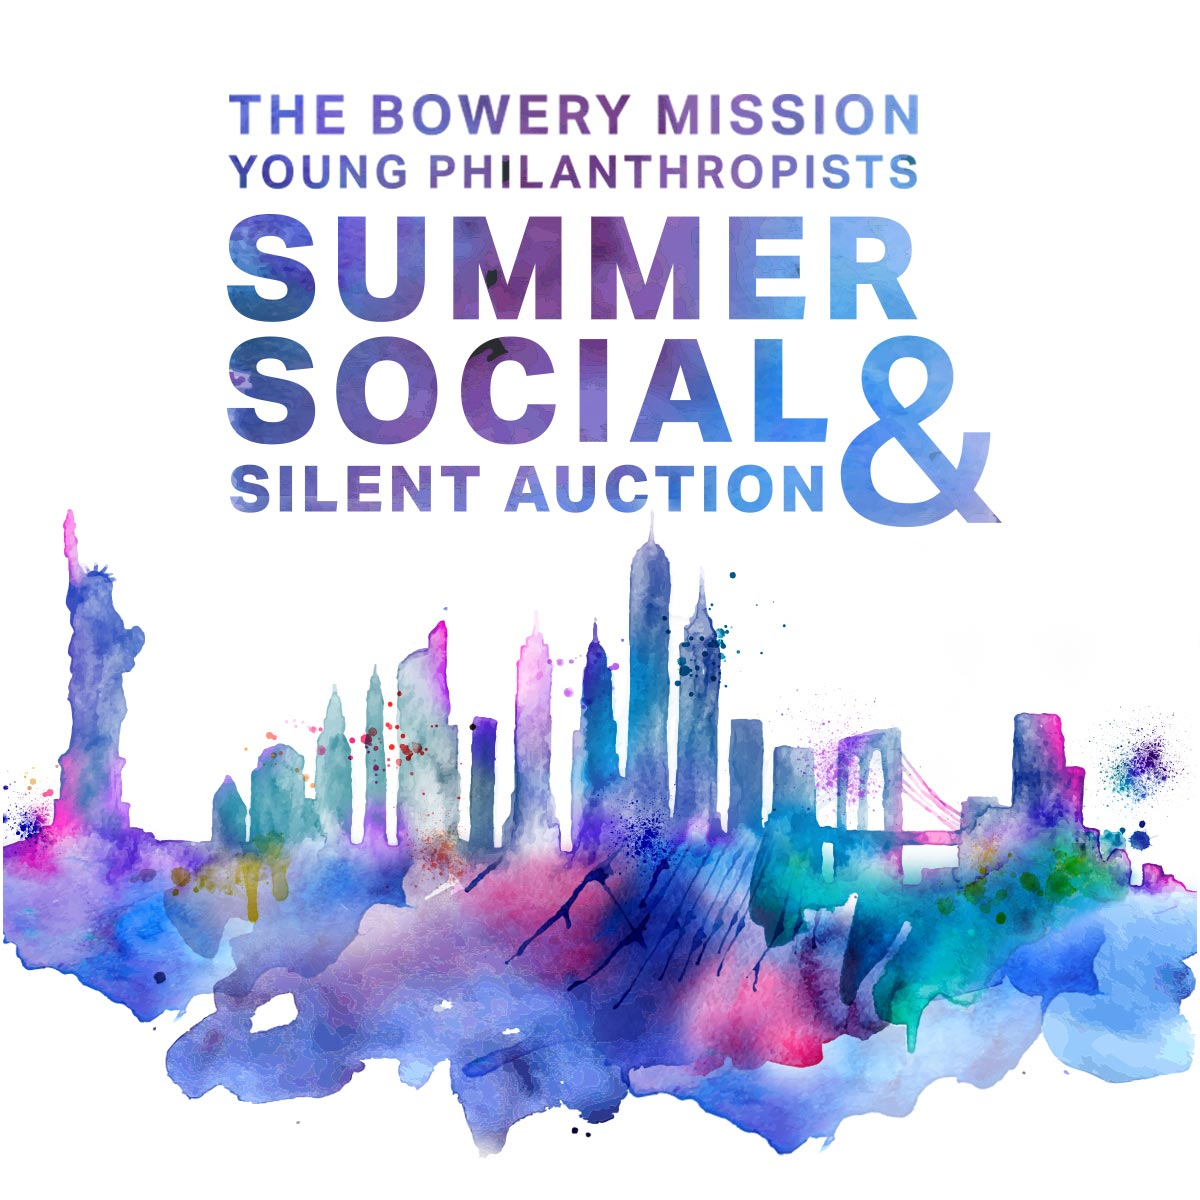 The Bowery Mission's 2017 Young Philanthropist Summer Social & Silent Auction